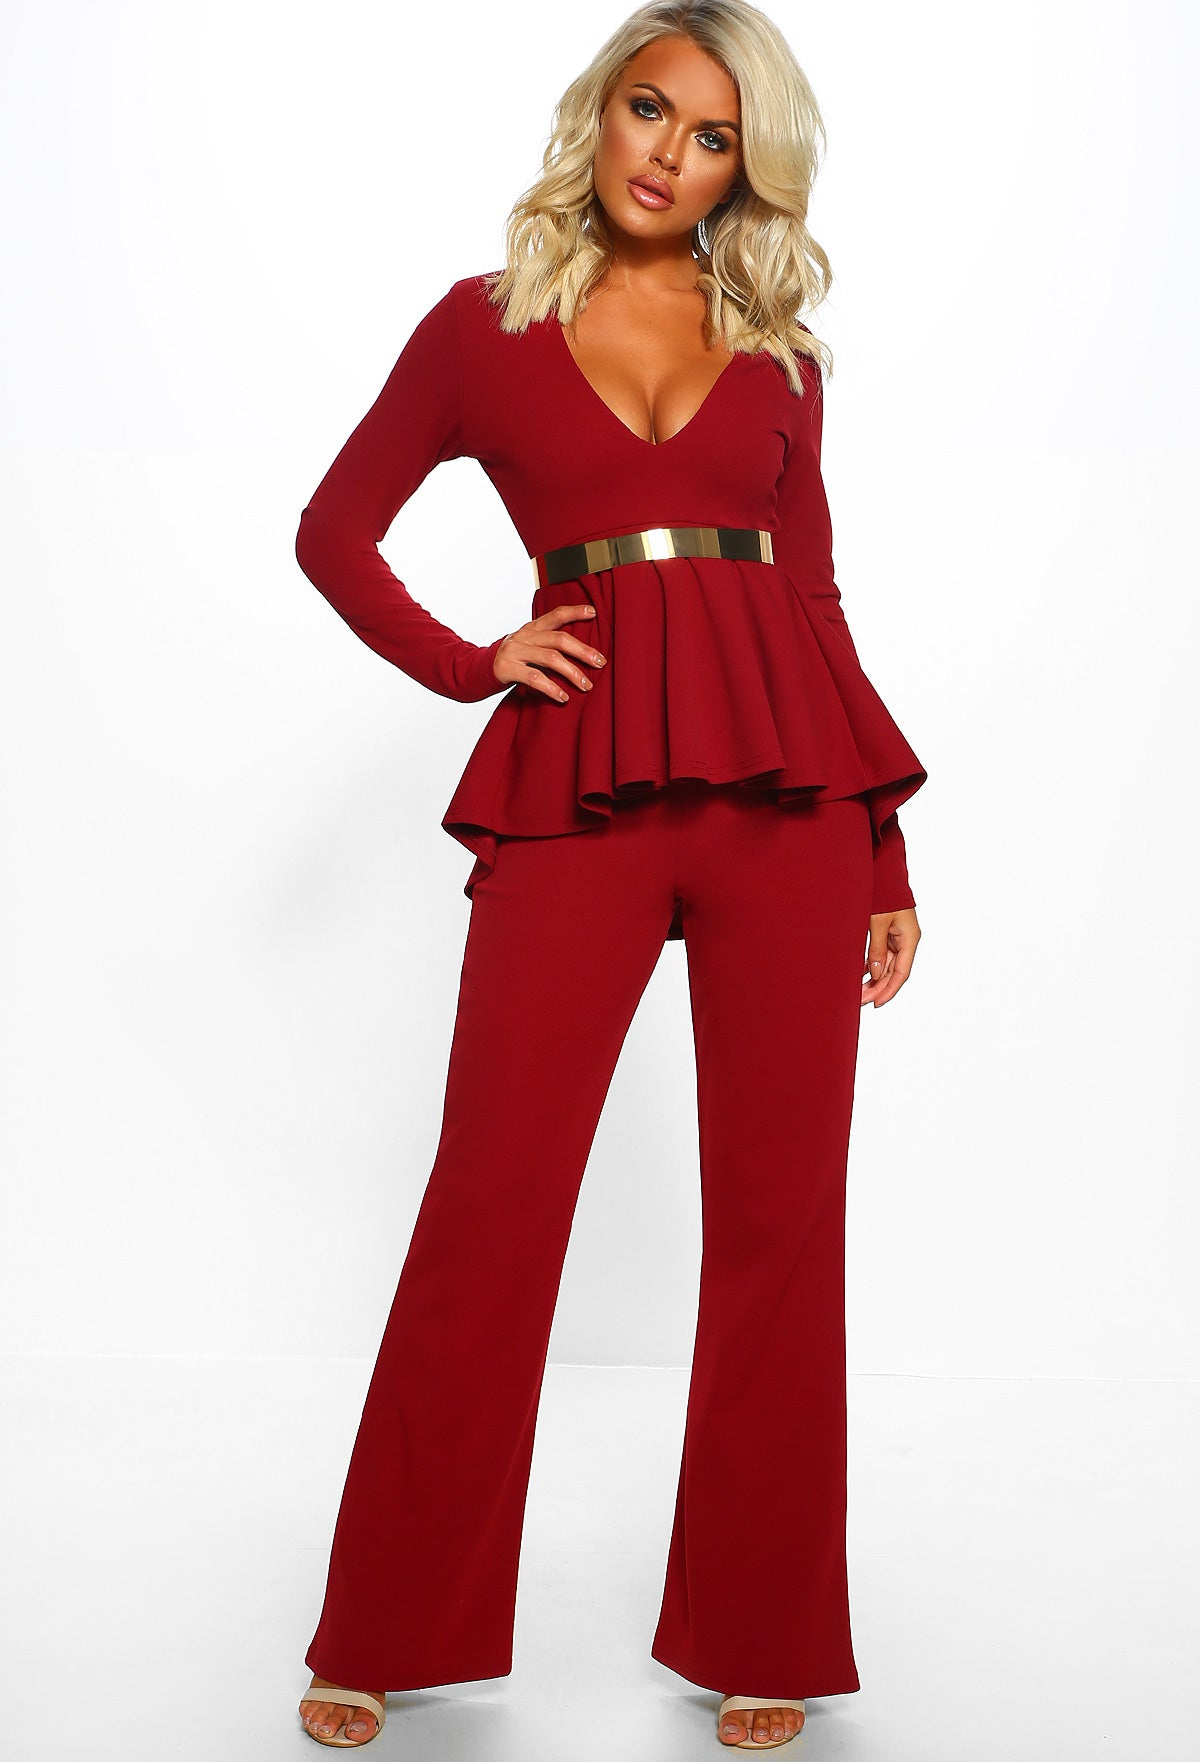 38214f8bf45 Gold Luxe Burgundy Belted Long Sleeve Peplum Jumpsuit – Pink Boutique UK